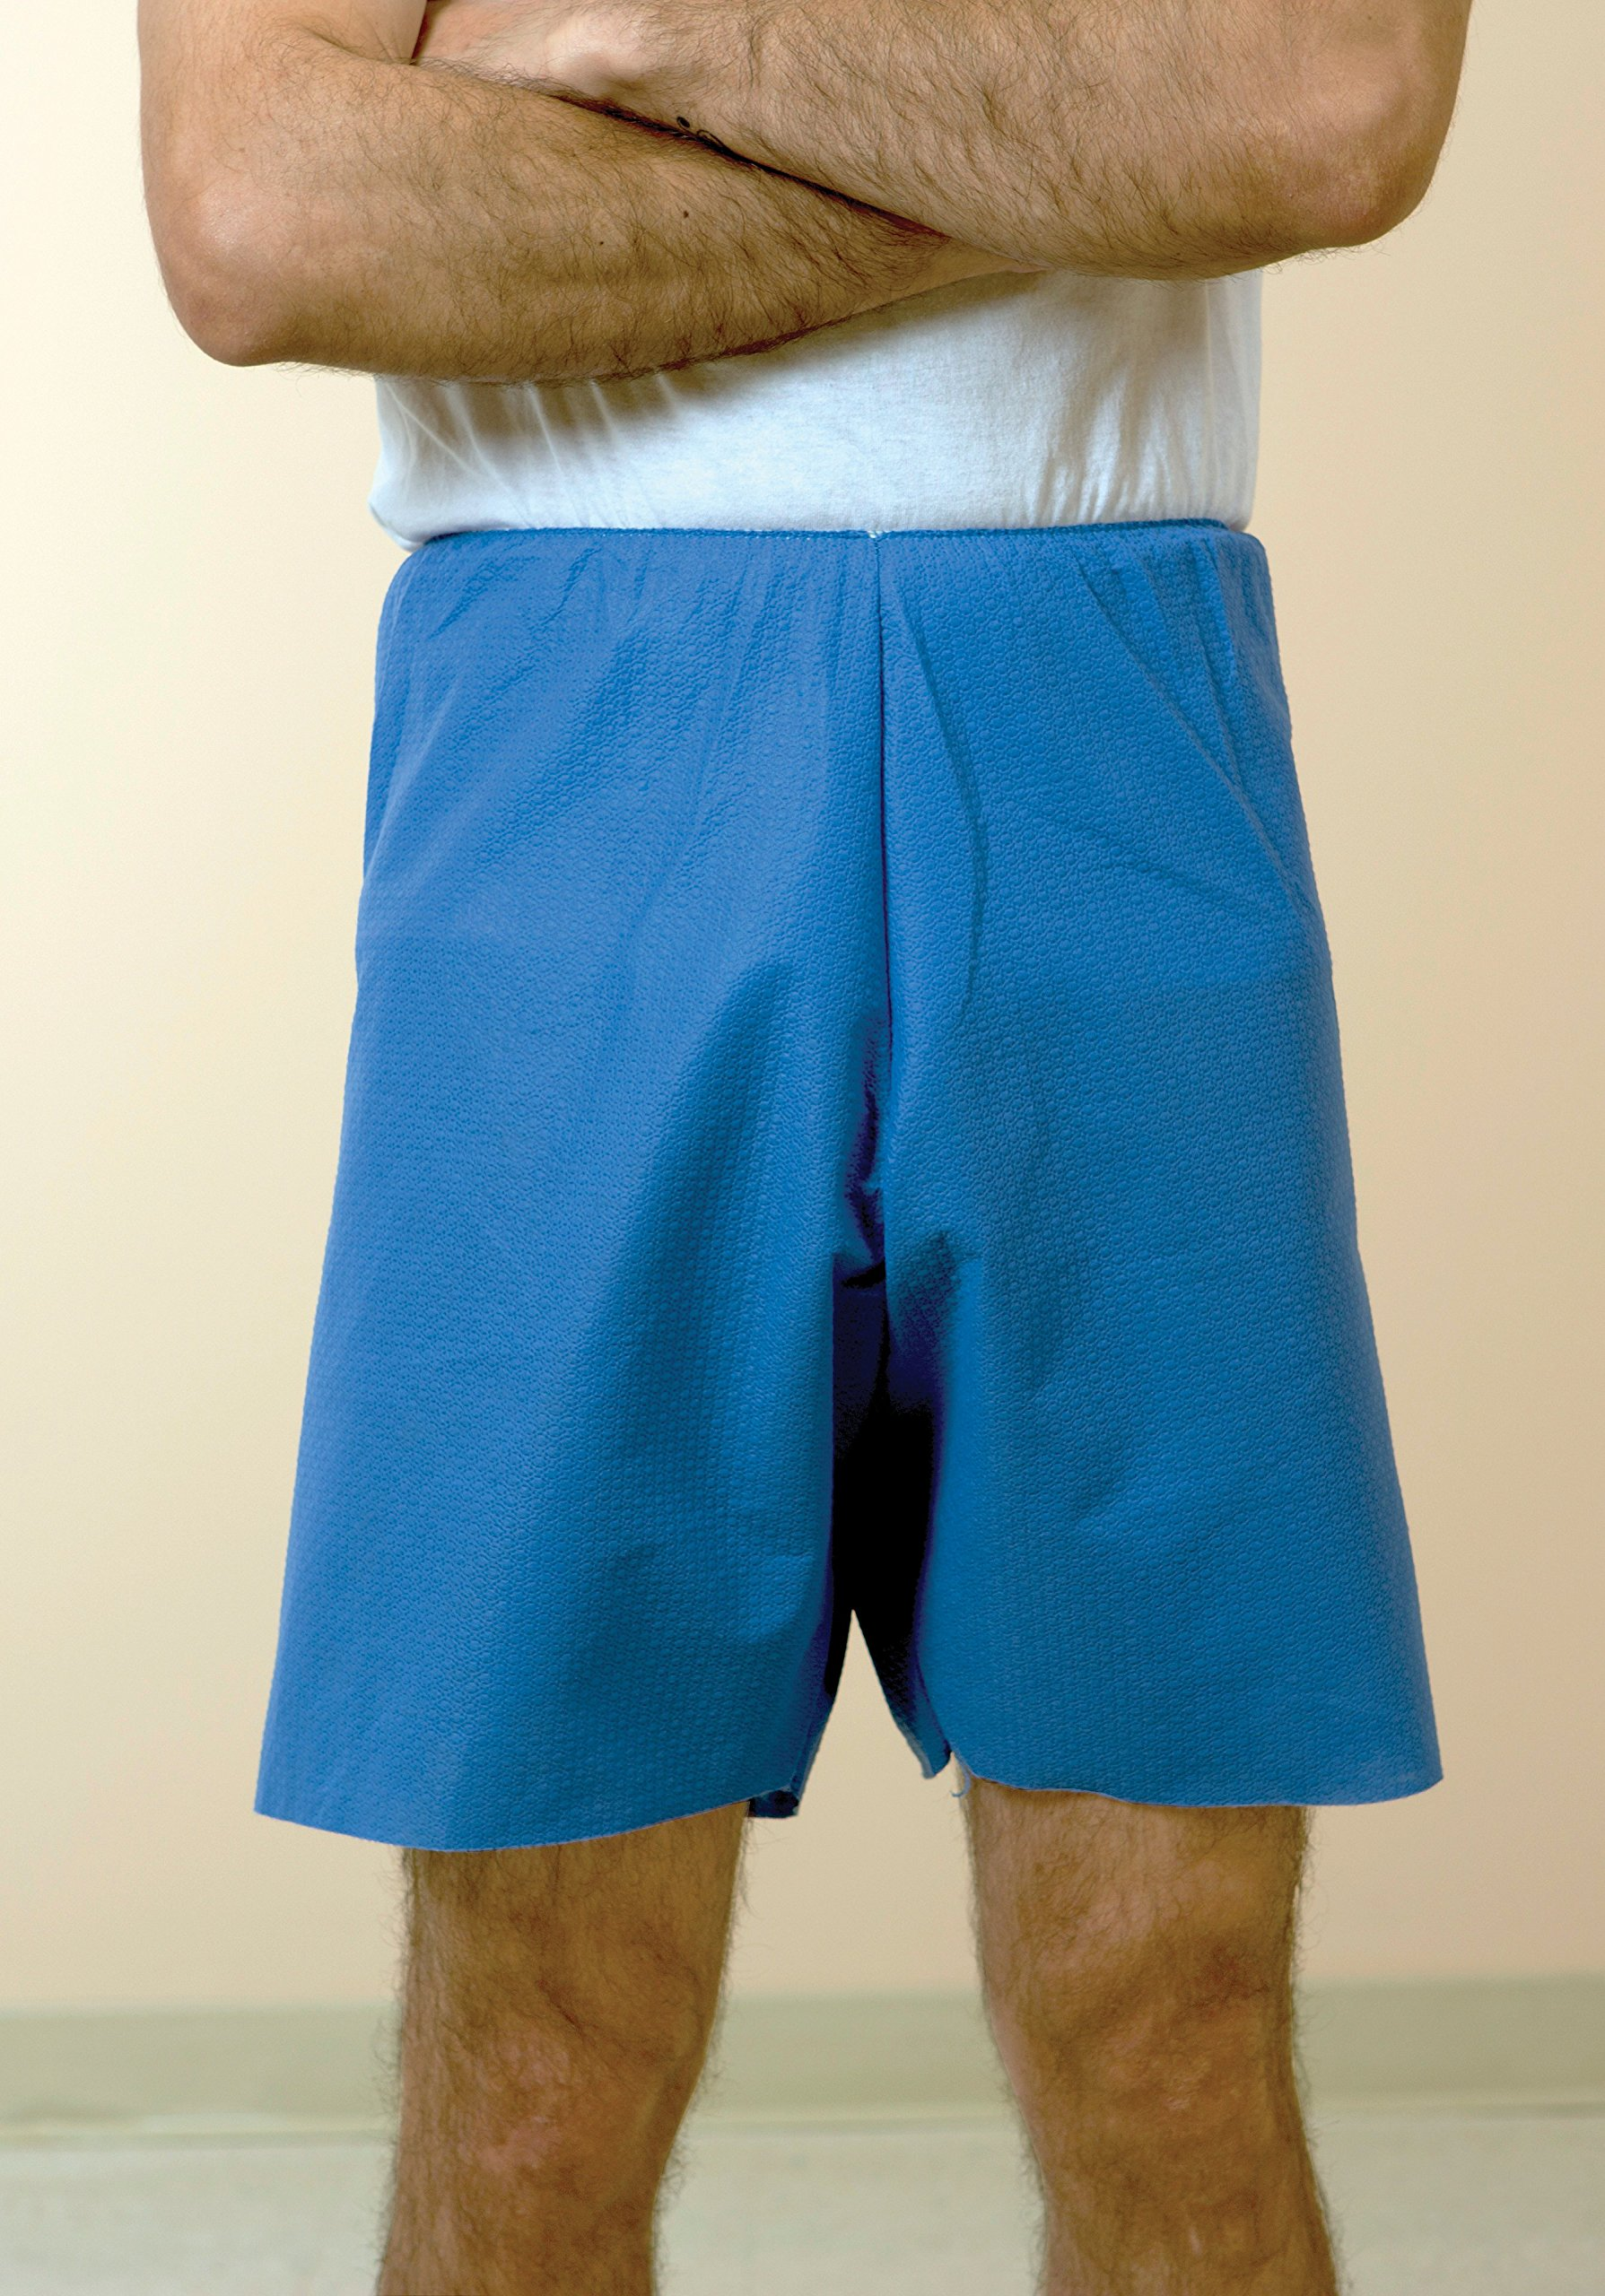 Encompass Group 45410-107 Exam Shorts, 5X-7X, Blue (Pack of 12)